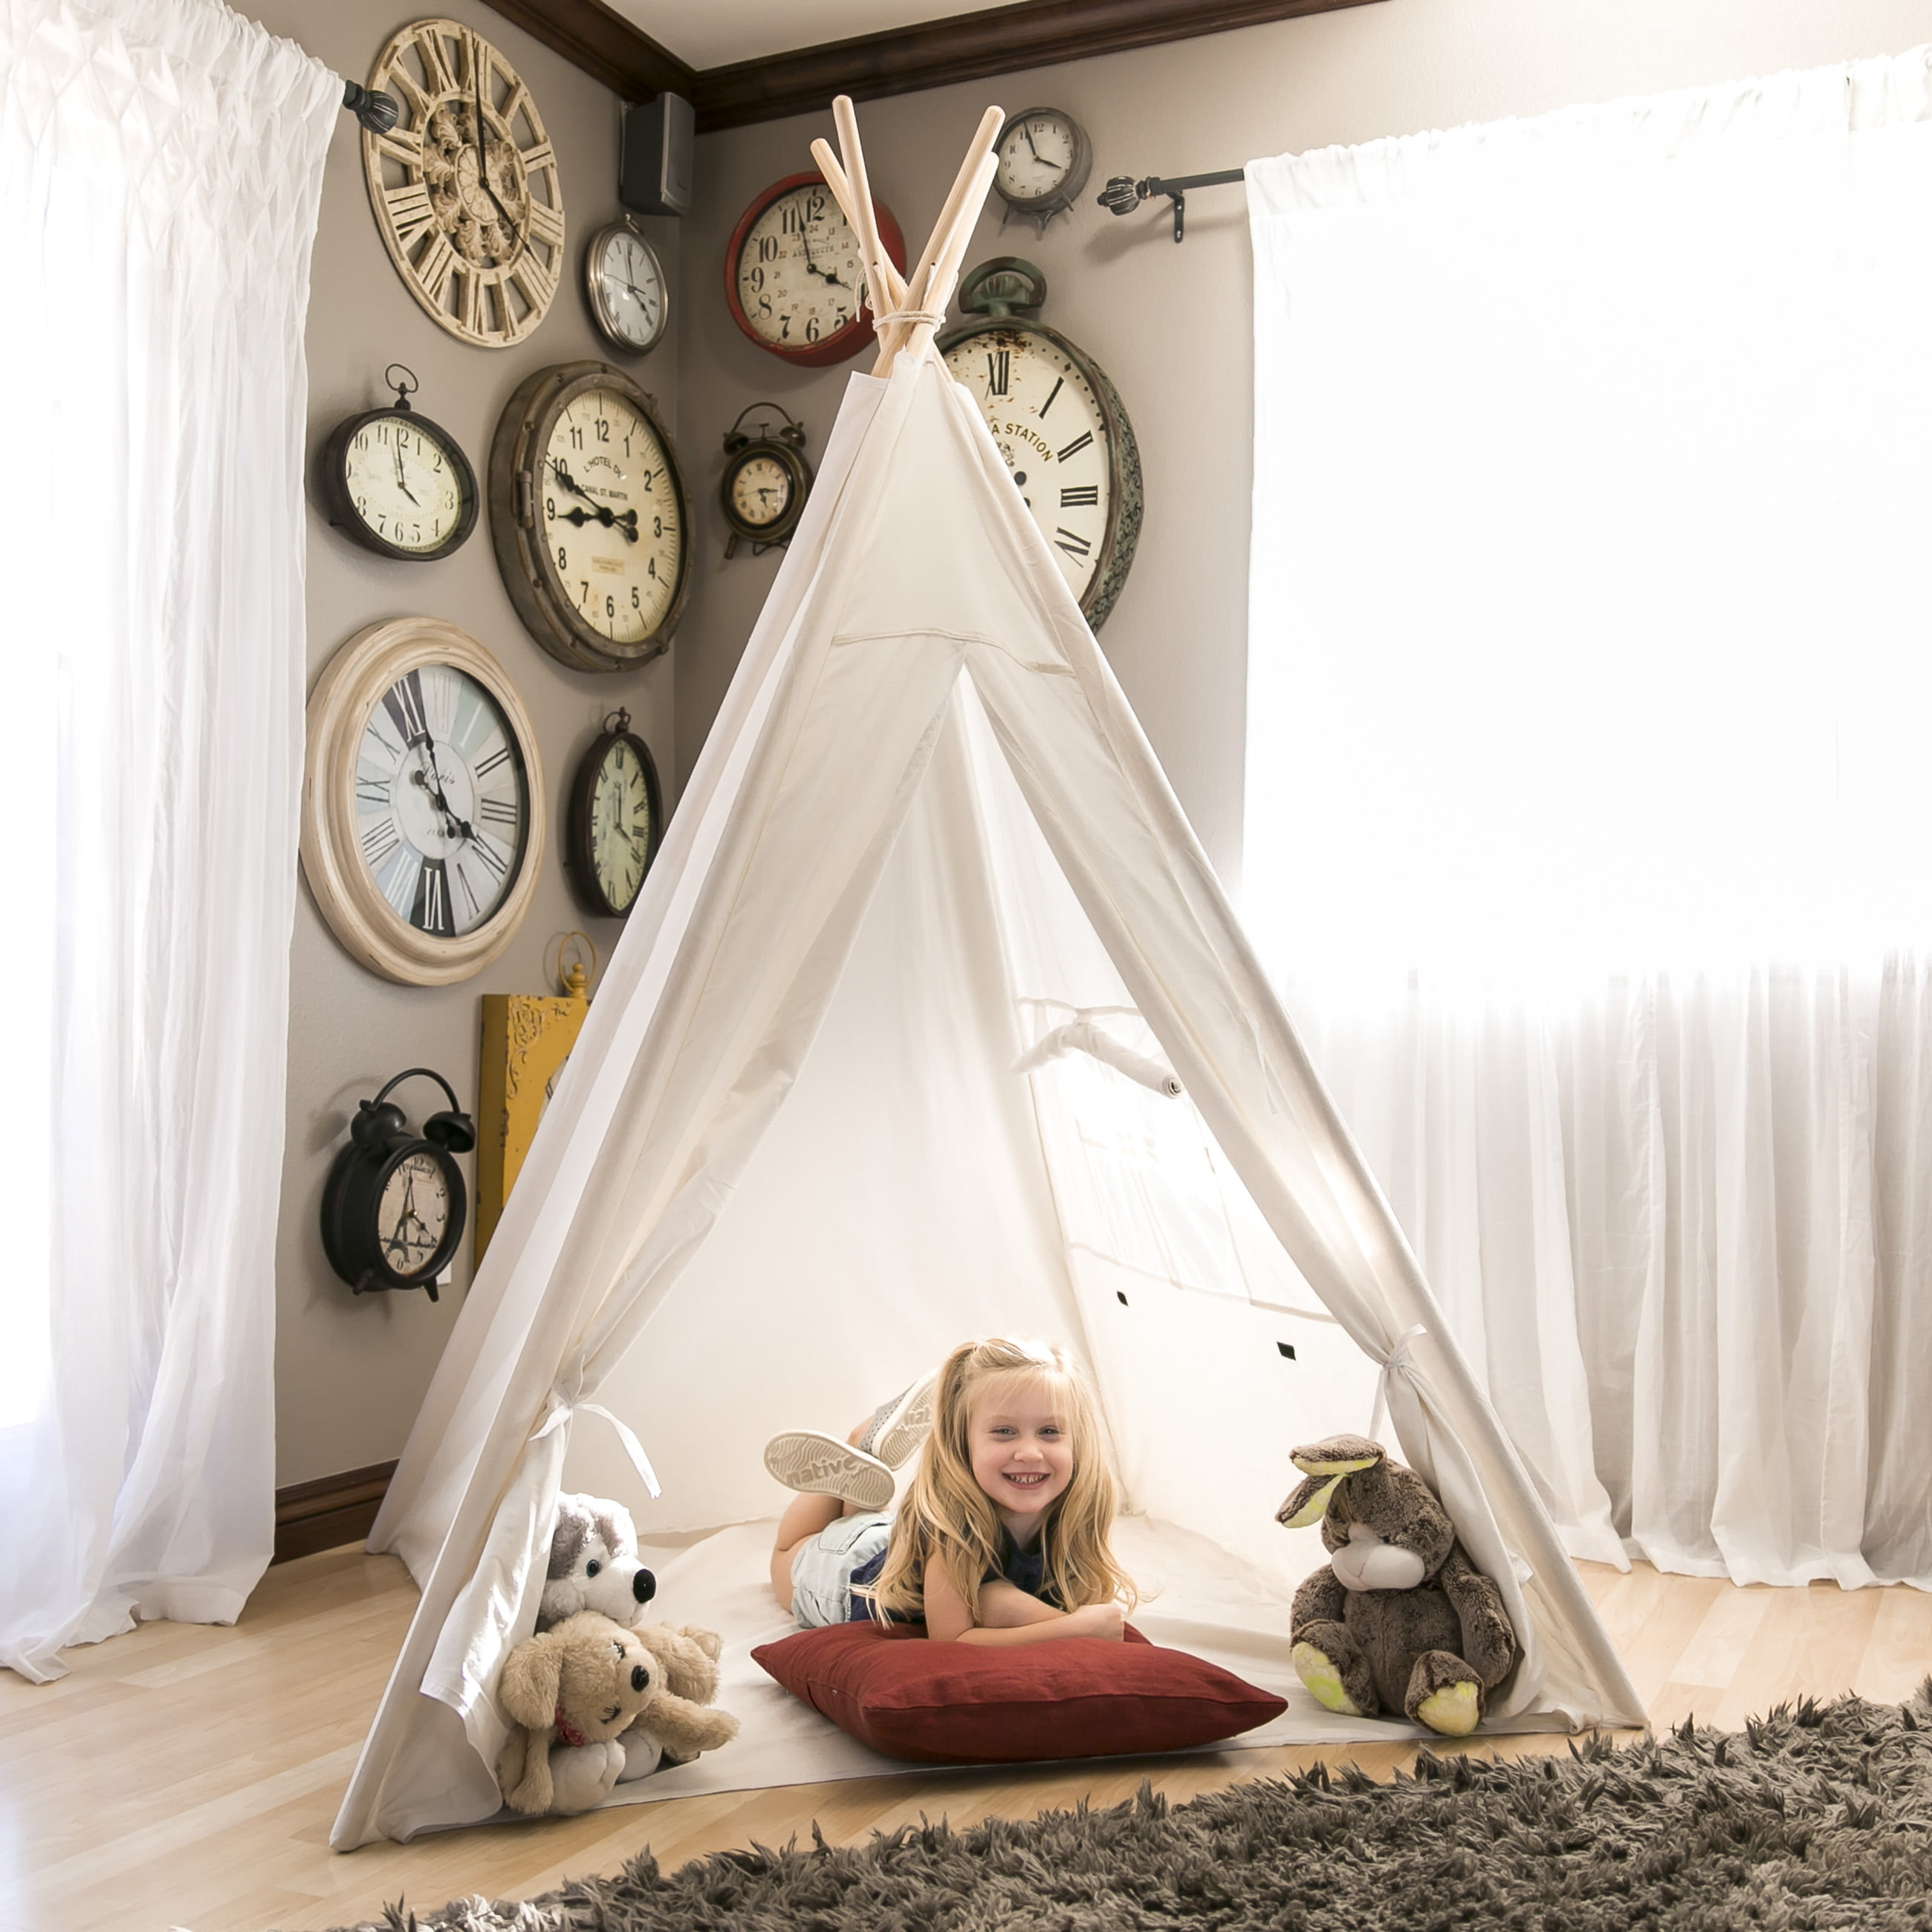 Best Choice Products 6ft White Teepee Tent Kids Indian Canvas Playhouse Sleeping Dome w  Carrying Bag White by Best Choice Products